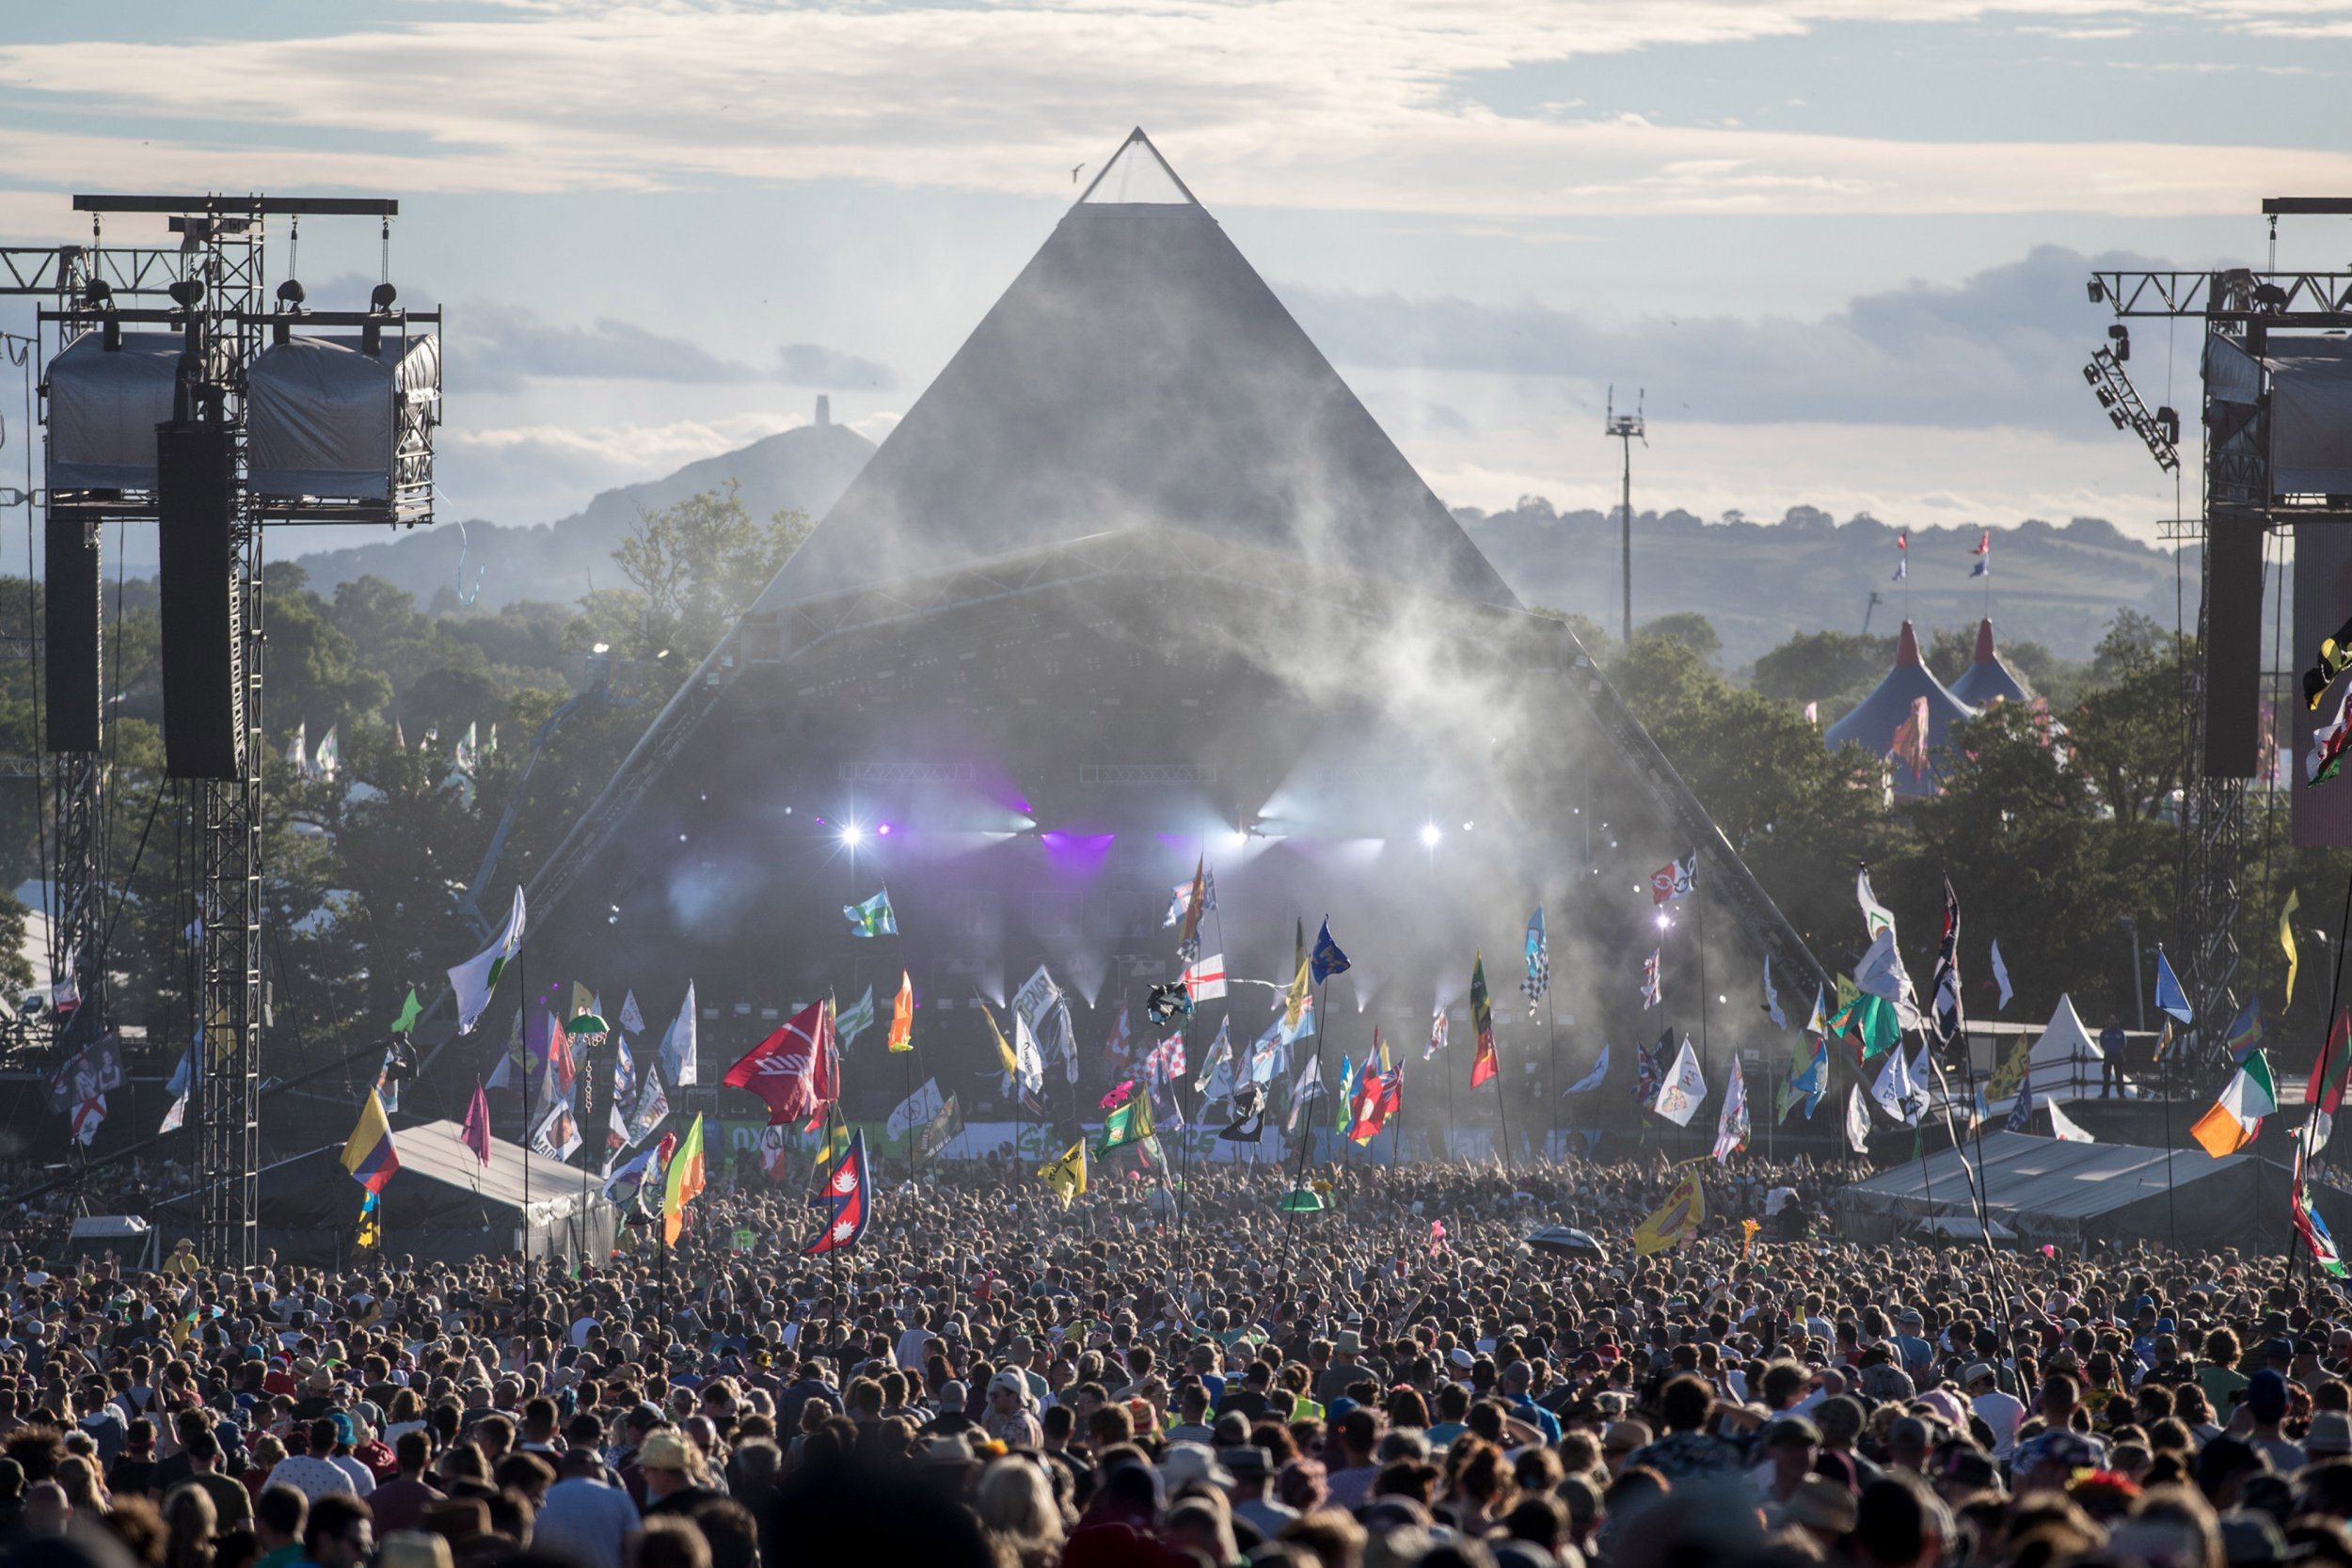 GLASTONBURY, ENGLAND - JUNE 25: People gather in front of the Pyramid Stage at Worthy Farm in Pilton on June 25, 2017 near Glastonbury, England. Glastonbury Festival of Contemporary Performing Arts is the largest greenfield festival in the world. It was started by Michael Eavis in 1970 when several hundred hippies paid just ??1, and now attracts more than 175,000 people (Photo by Matt Cardy/Getty Images)